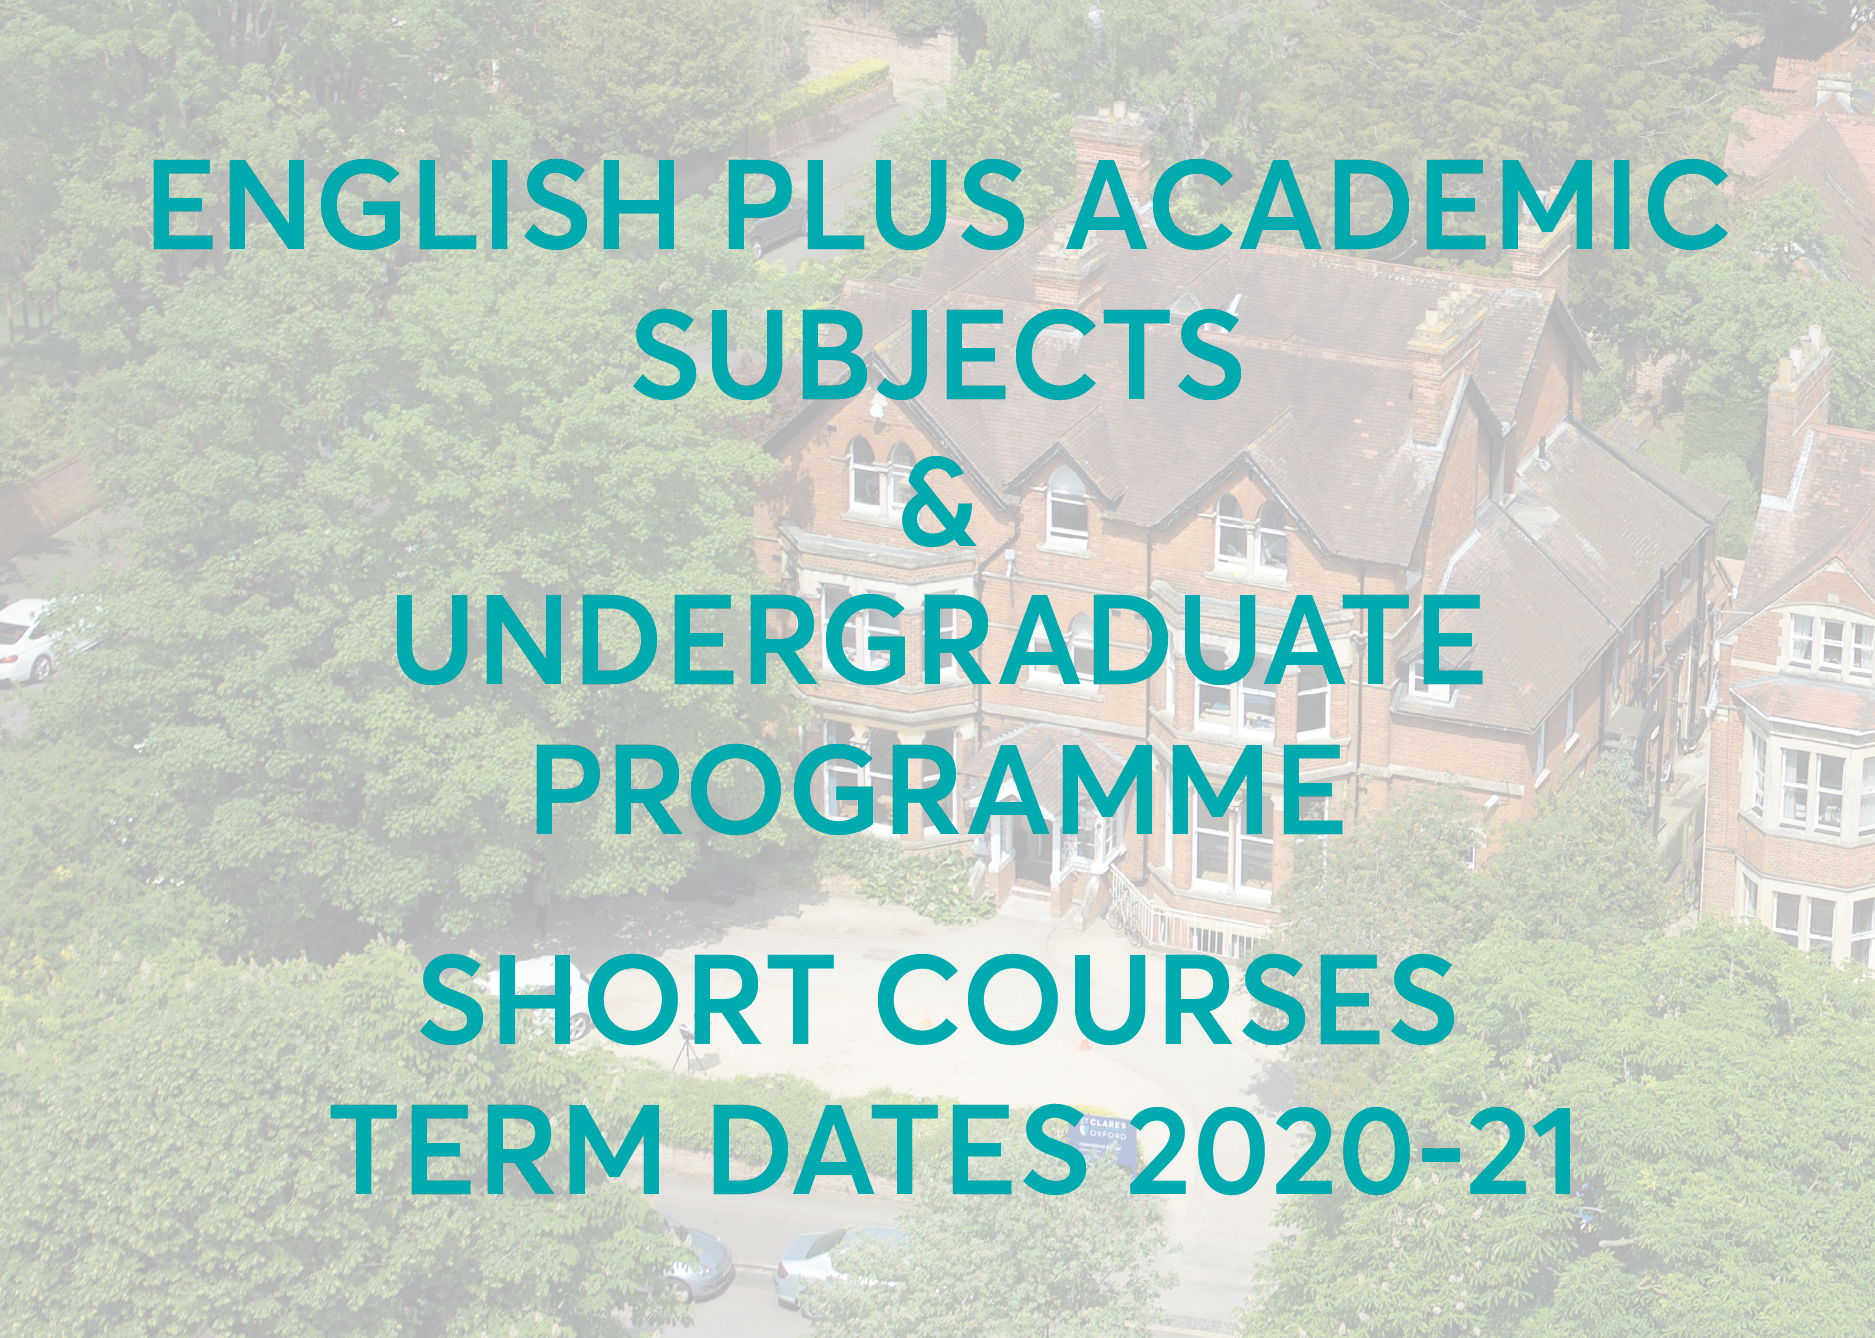 Undergraduate Programme Term Dates